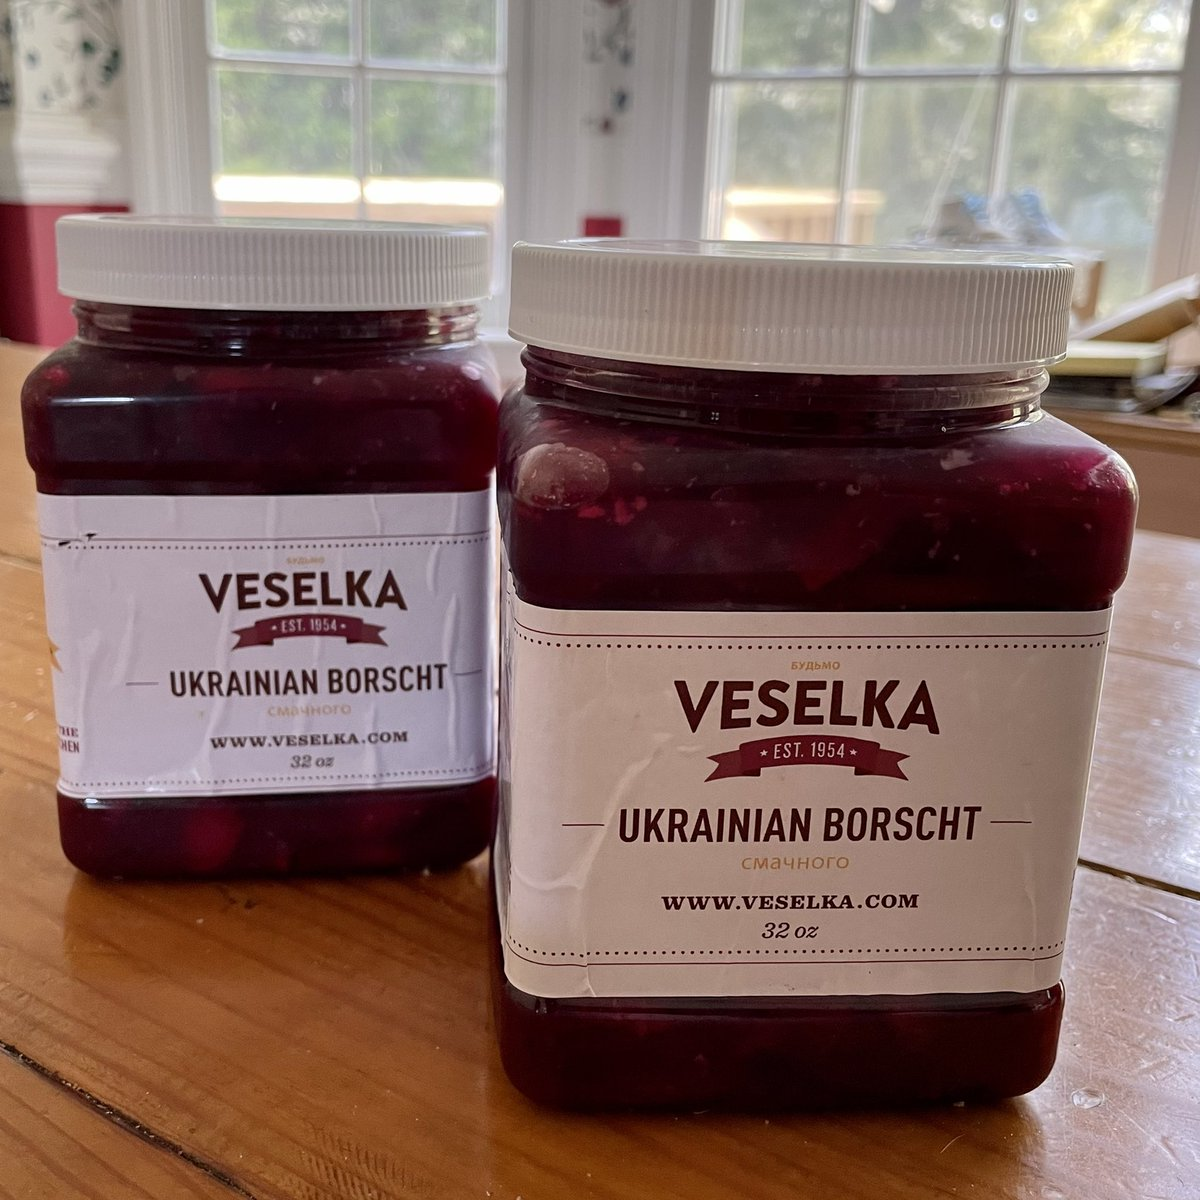 Ready for @goldbelly? Shipping our soups, Stroganoff, pierogi and more nationwide.     📸    @wspate  #borscht #chickennoodle #poppyseedbread #beefstroganoff #goulash #veselkanyc #pierogi #goldbelly